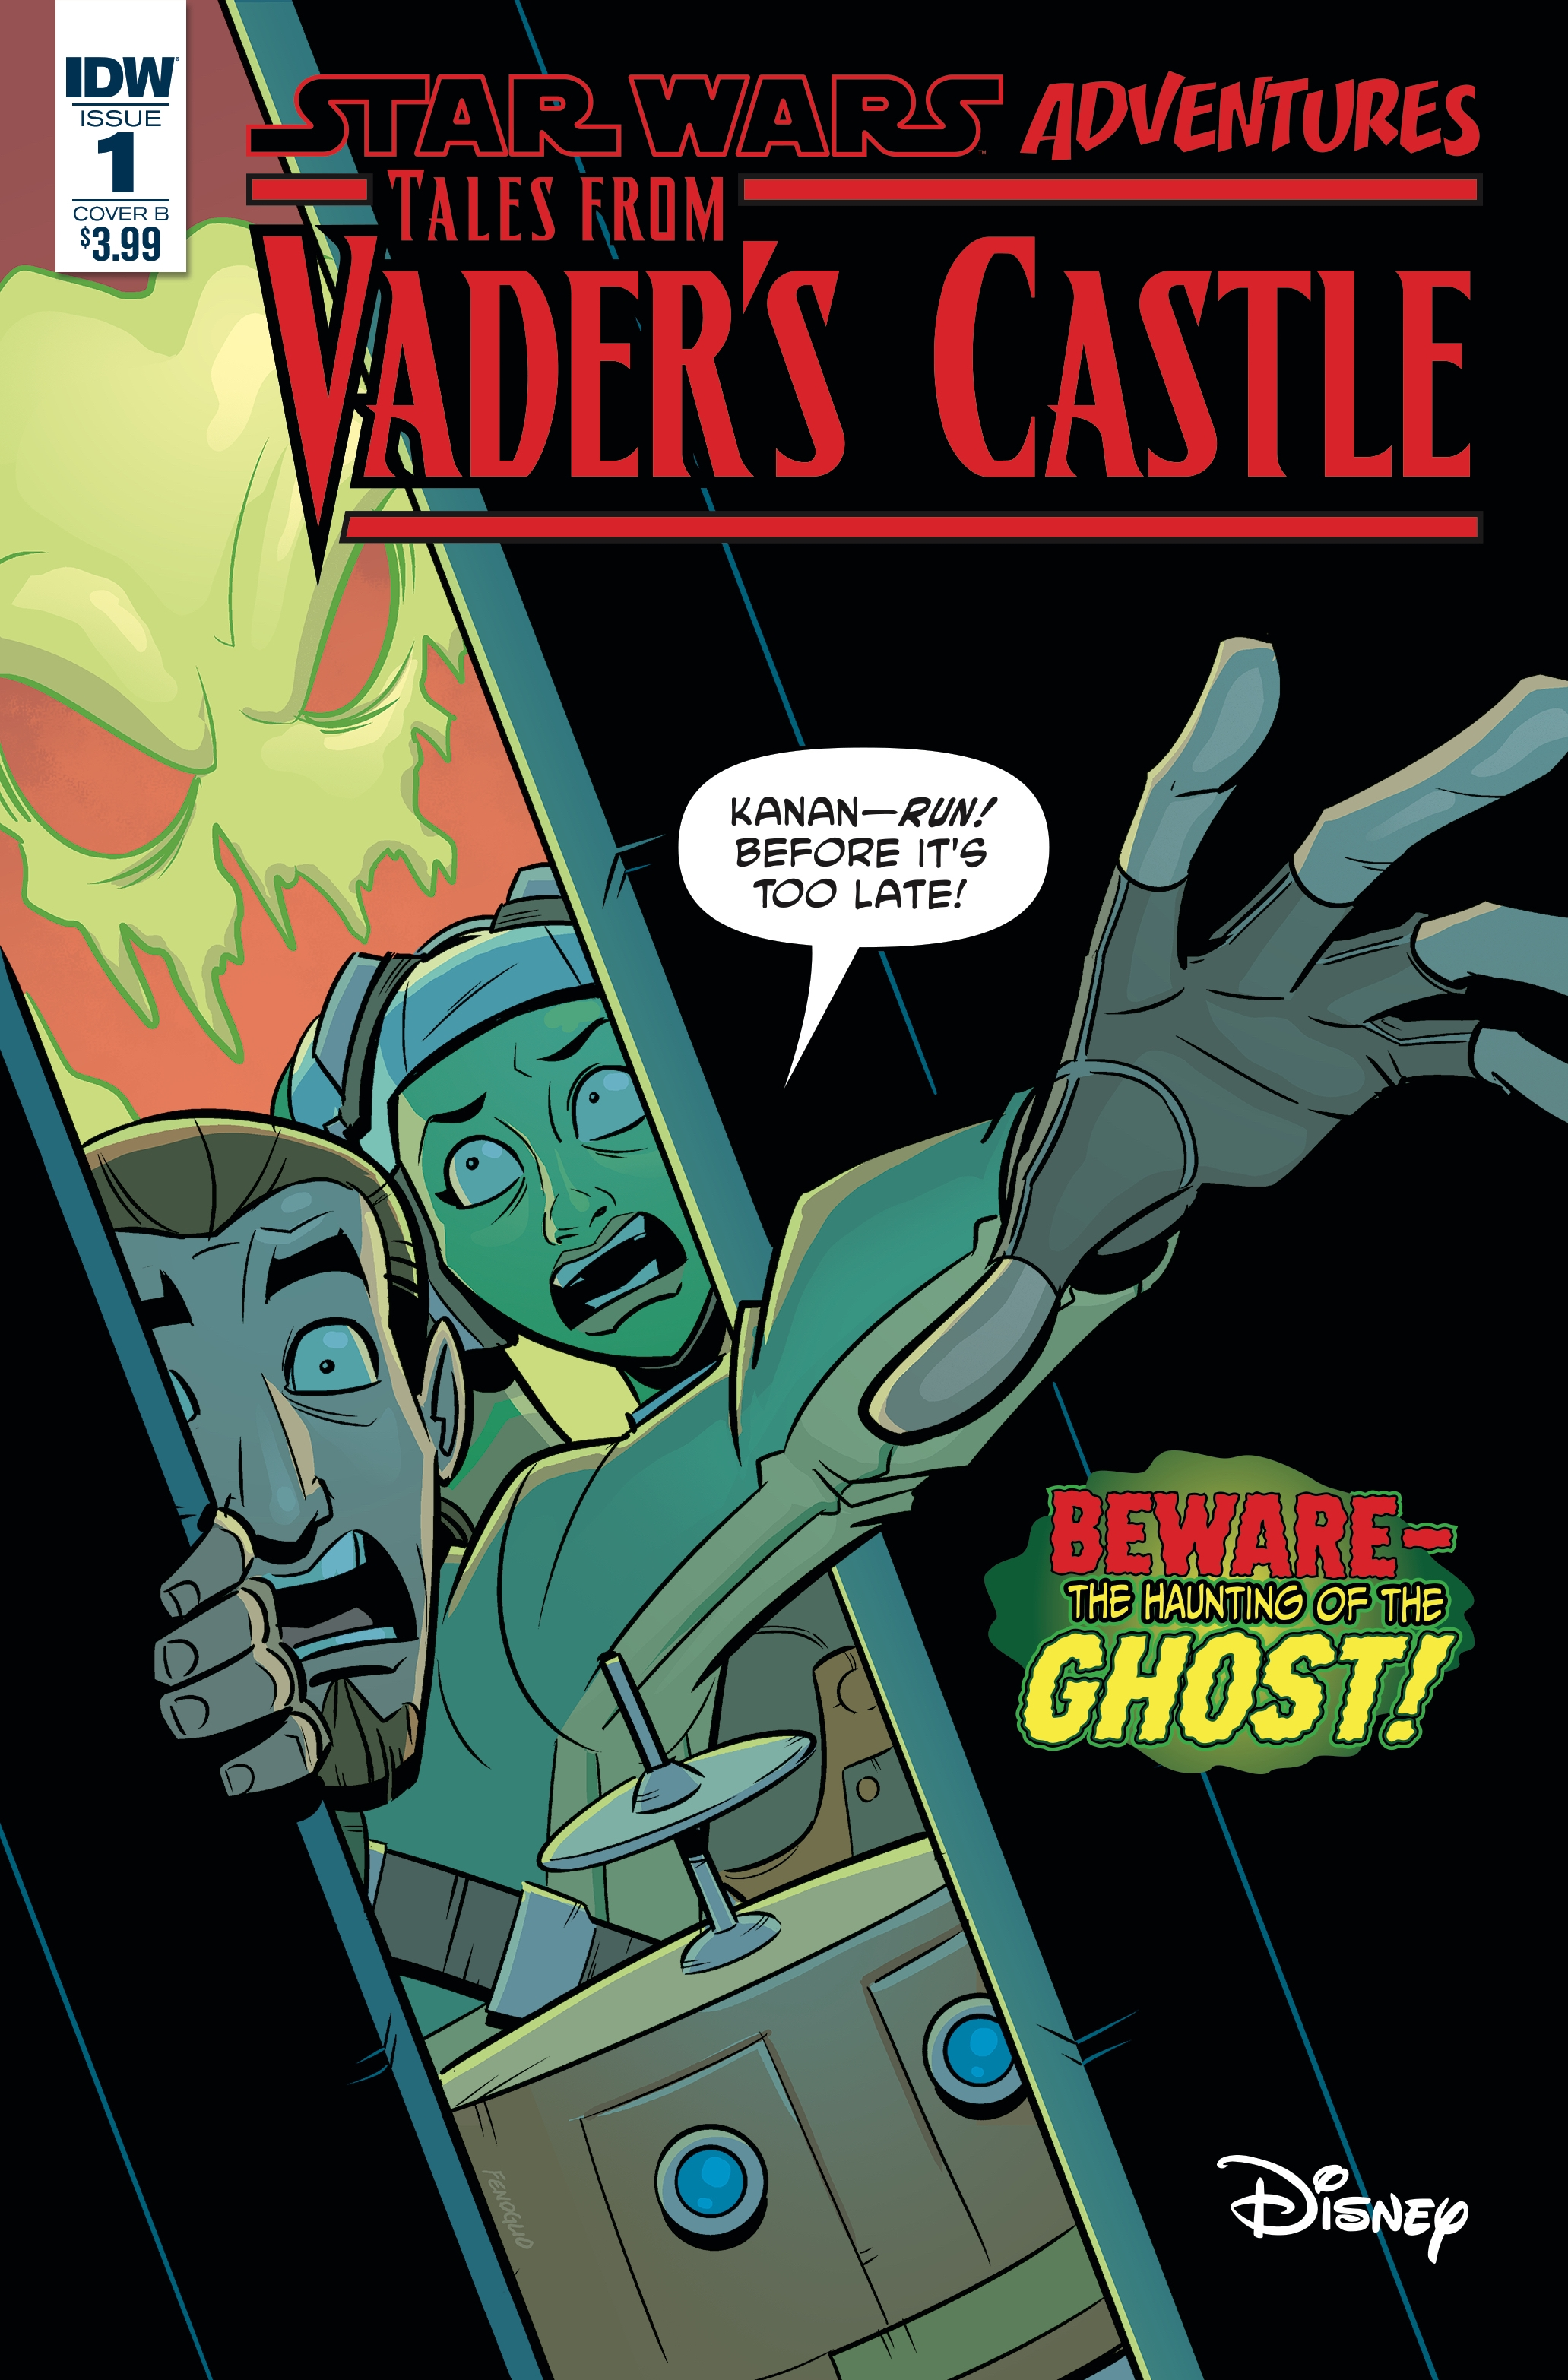 Star Wars Adventures: Tales from Vader's Castle #1 (Cover B by Chris Fenoglio) (03.10.2018)